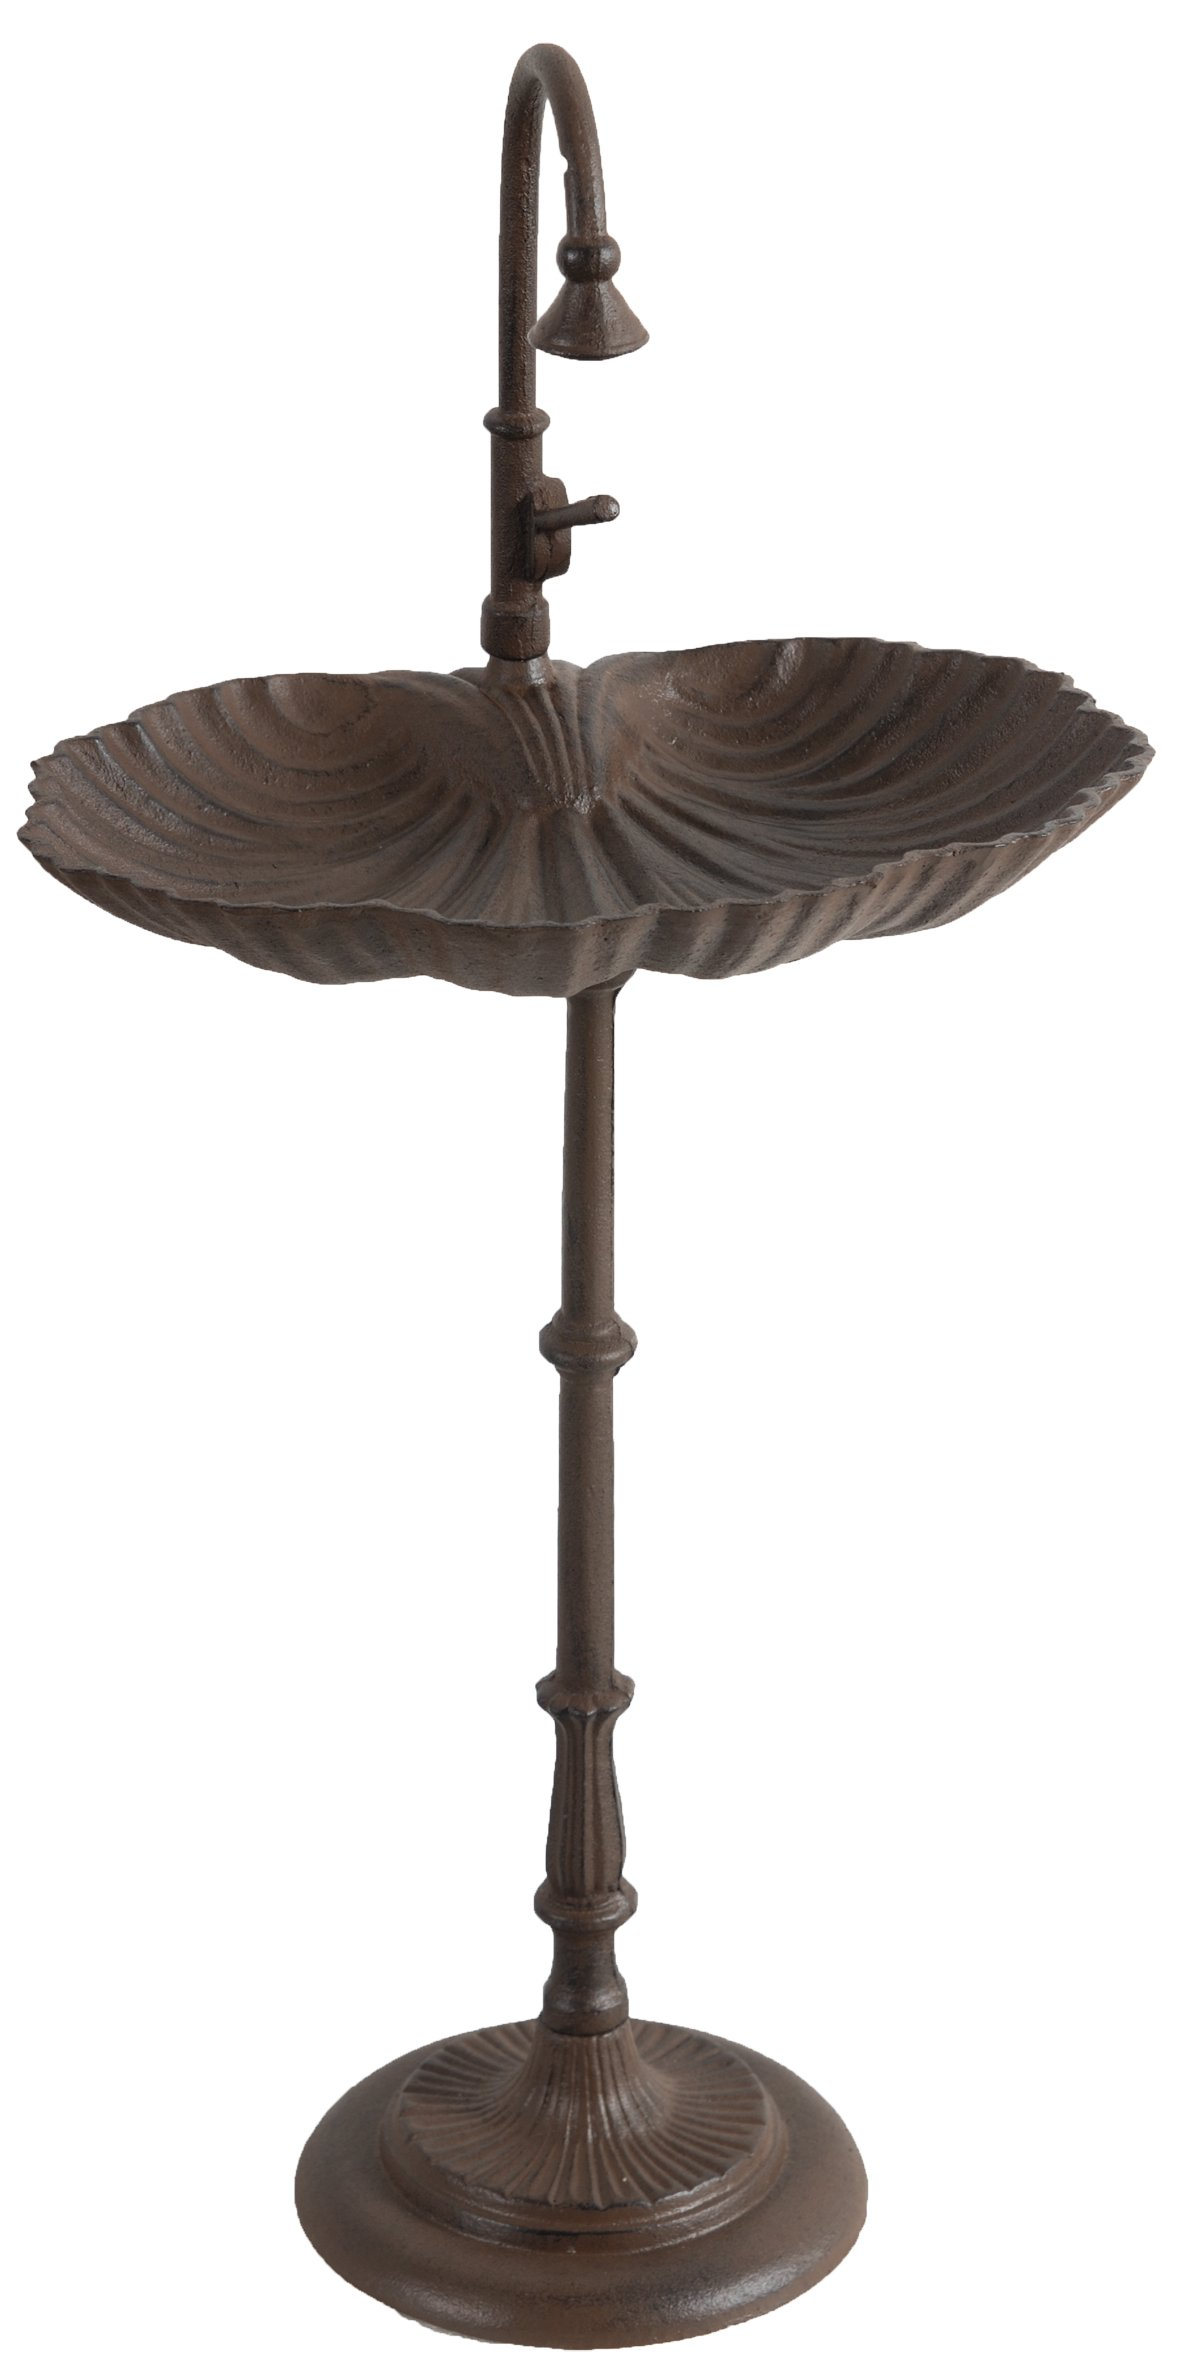 A&B Home 35053 Bird Bath,  12-1/2 inches by 10-1/8 inches by 26-1/2 inches by A&B Home